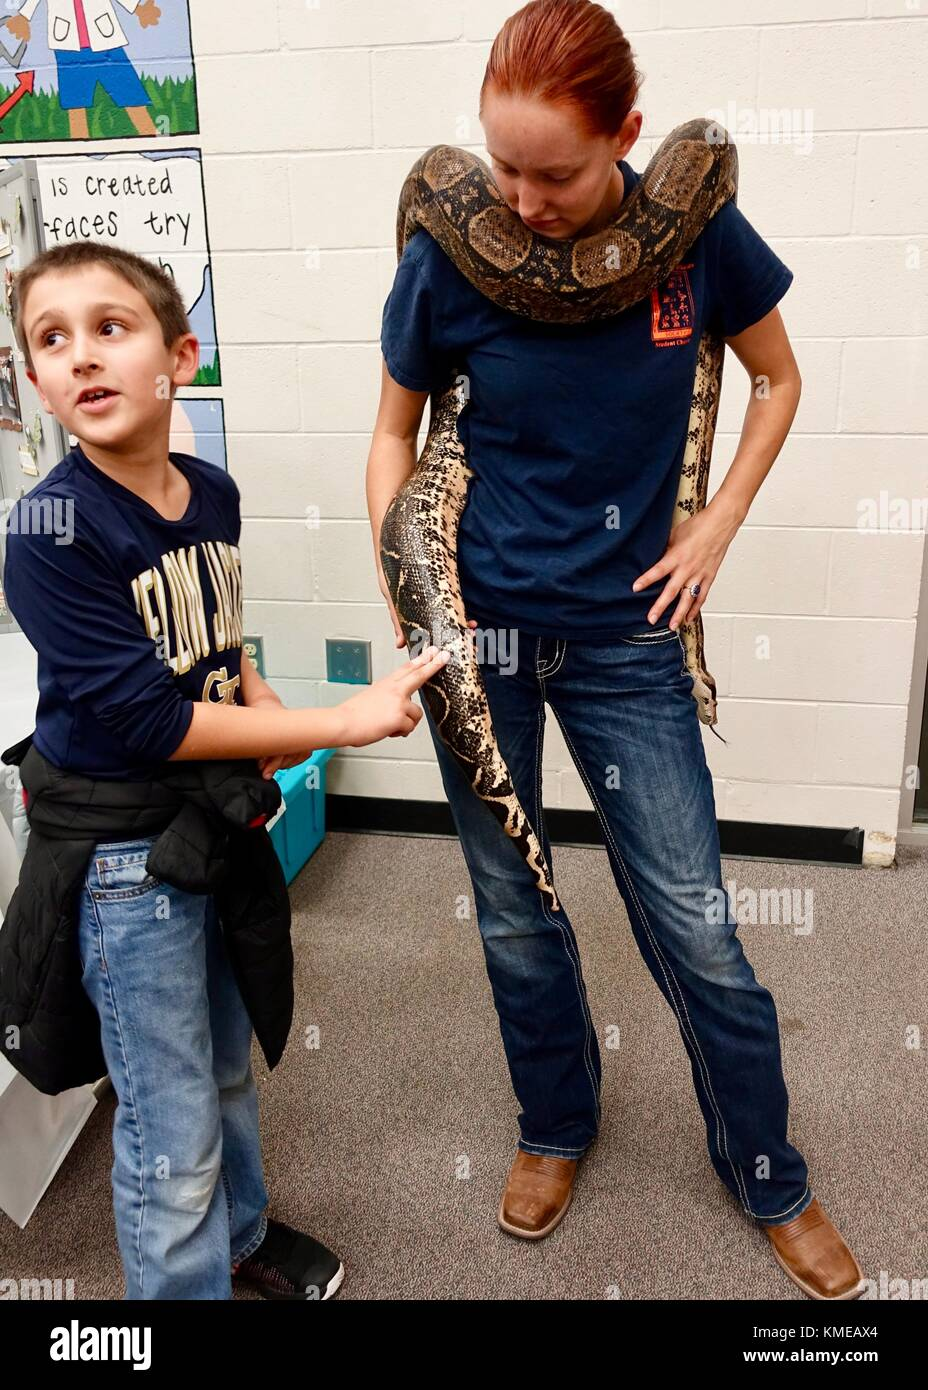 USA, Florida. Boy tentatively touching large boa constrictor snake held by university student at a science open - Stock Image